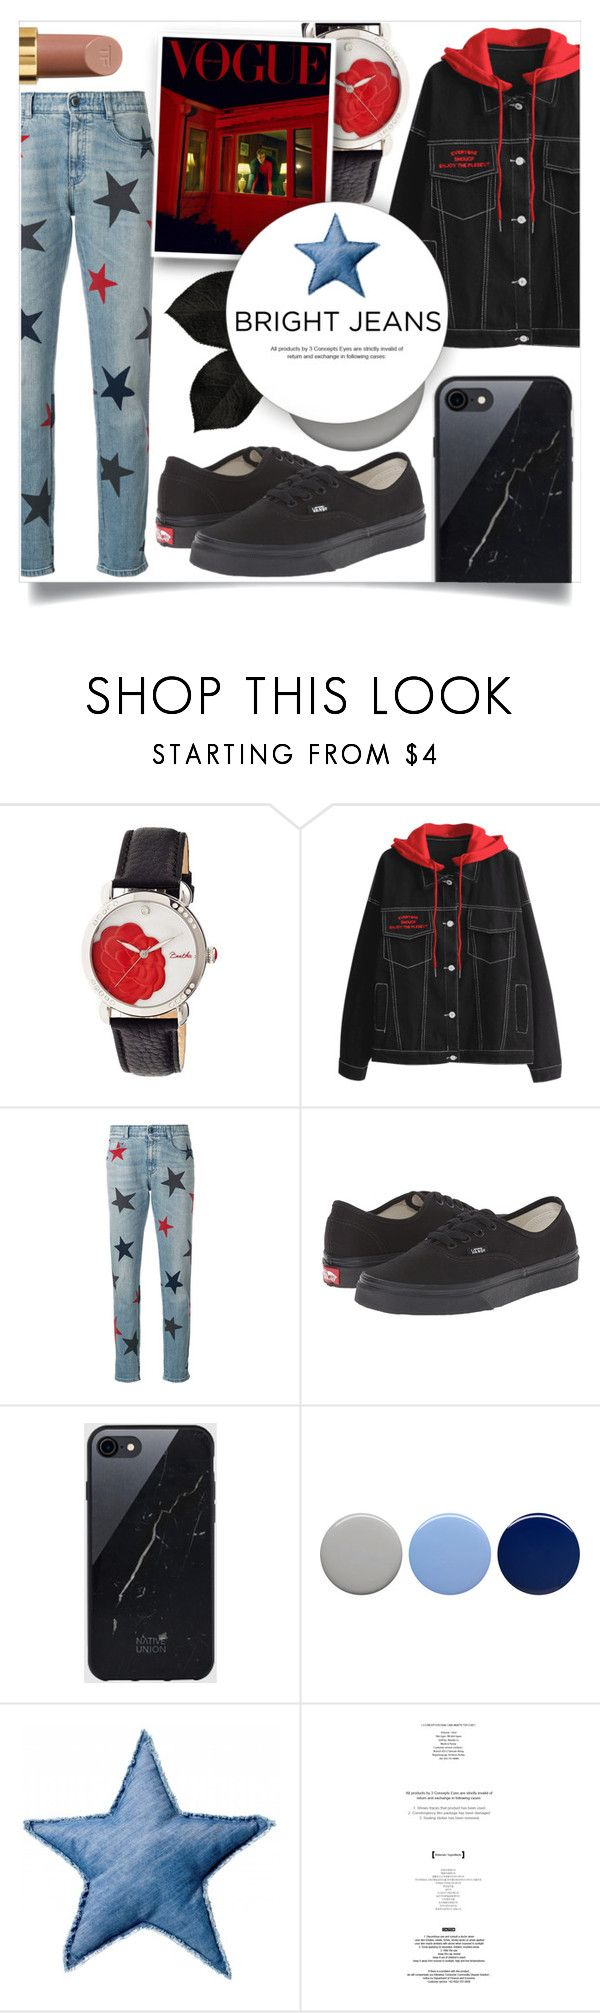 """""""Bright Jeans"""" by litenfels ❤ liked on Polyvore featuring Bertha, STELLA McCARTNEY, Vans, Sefton, Burberry, Bloomingville, StyleNanda and Tom Ford"""